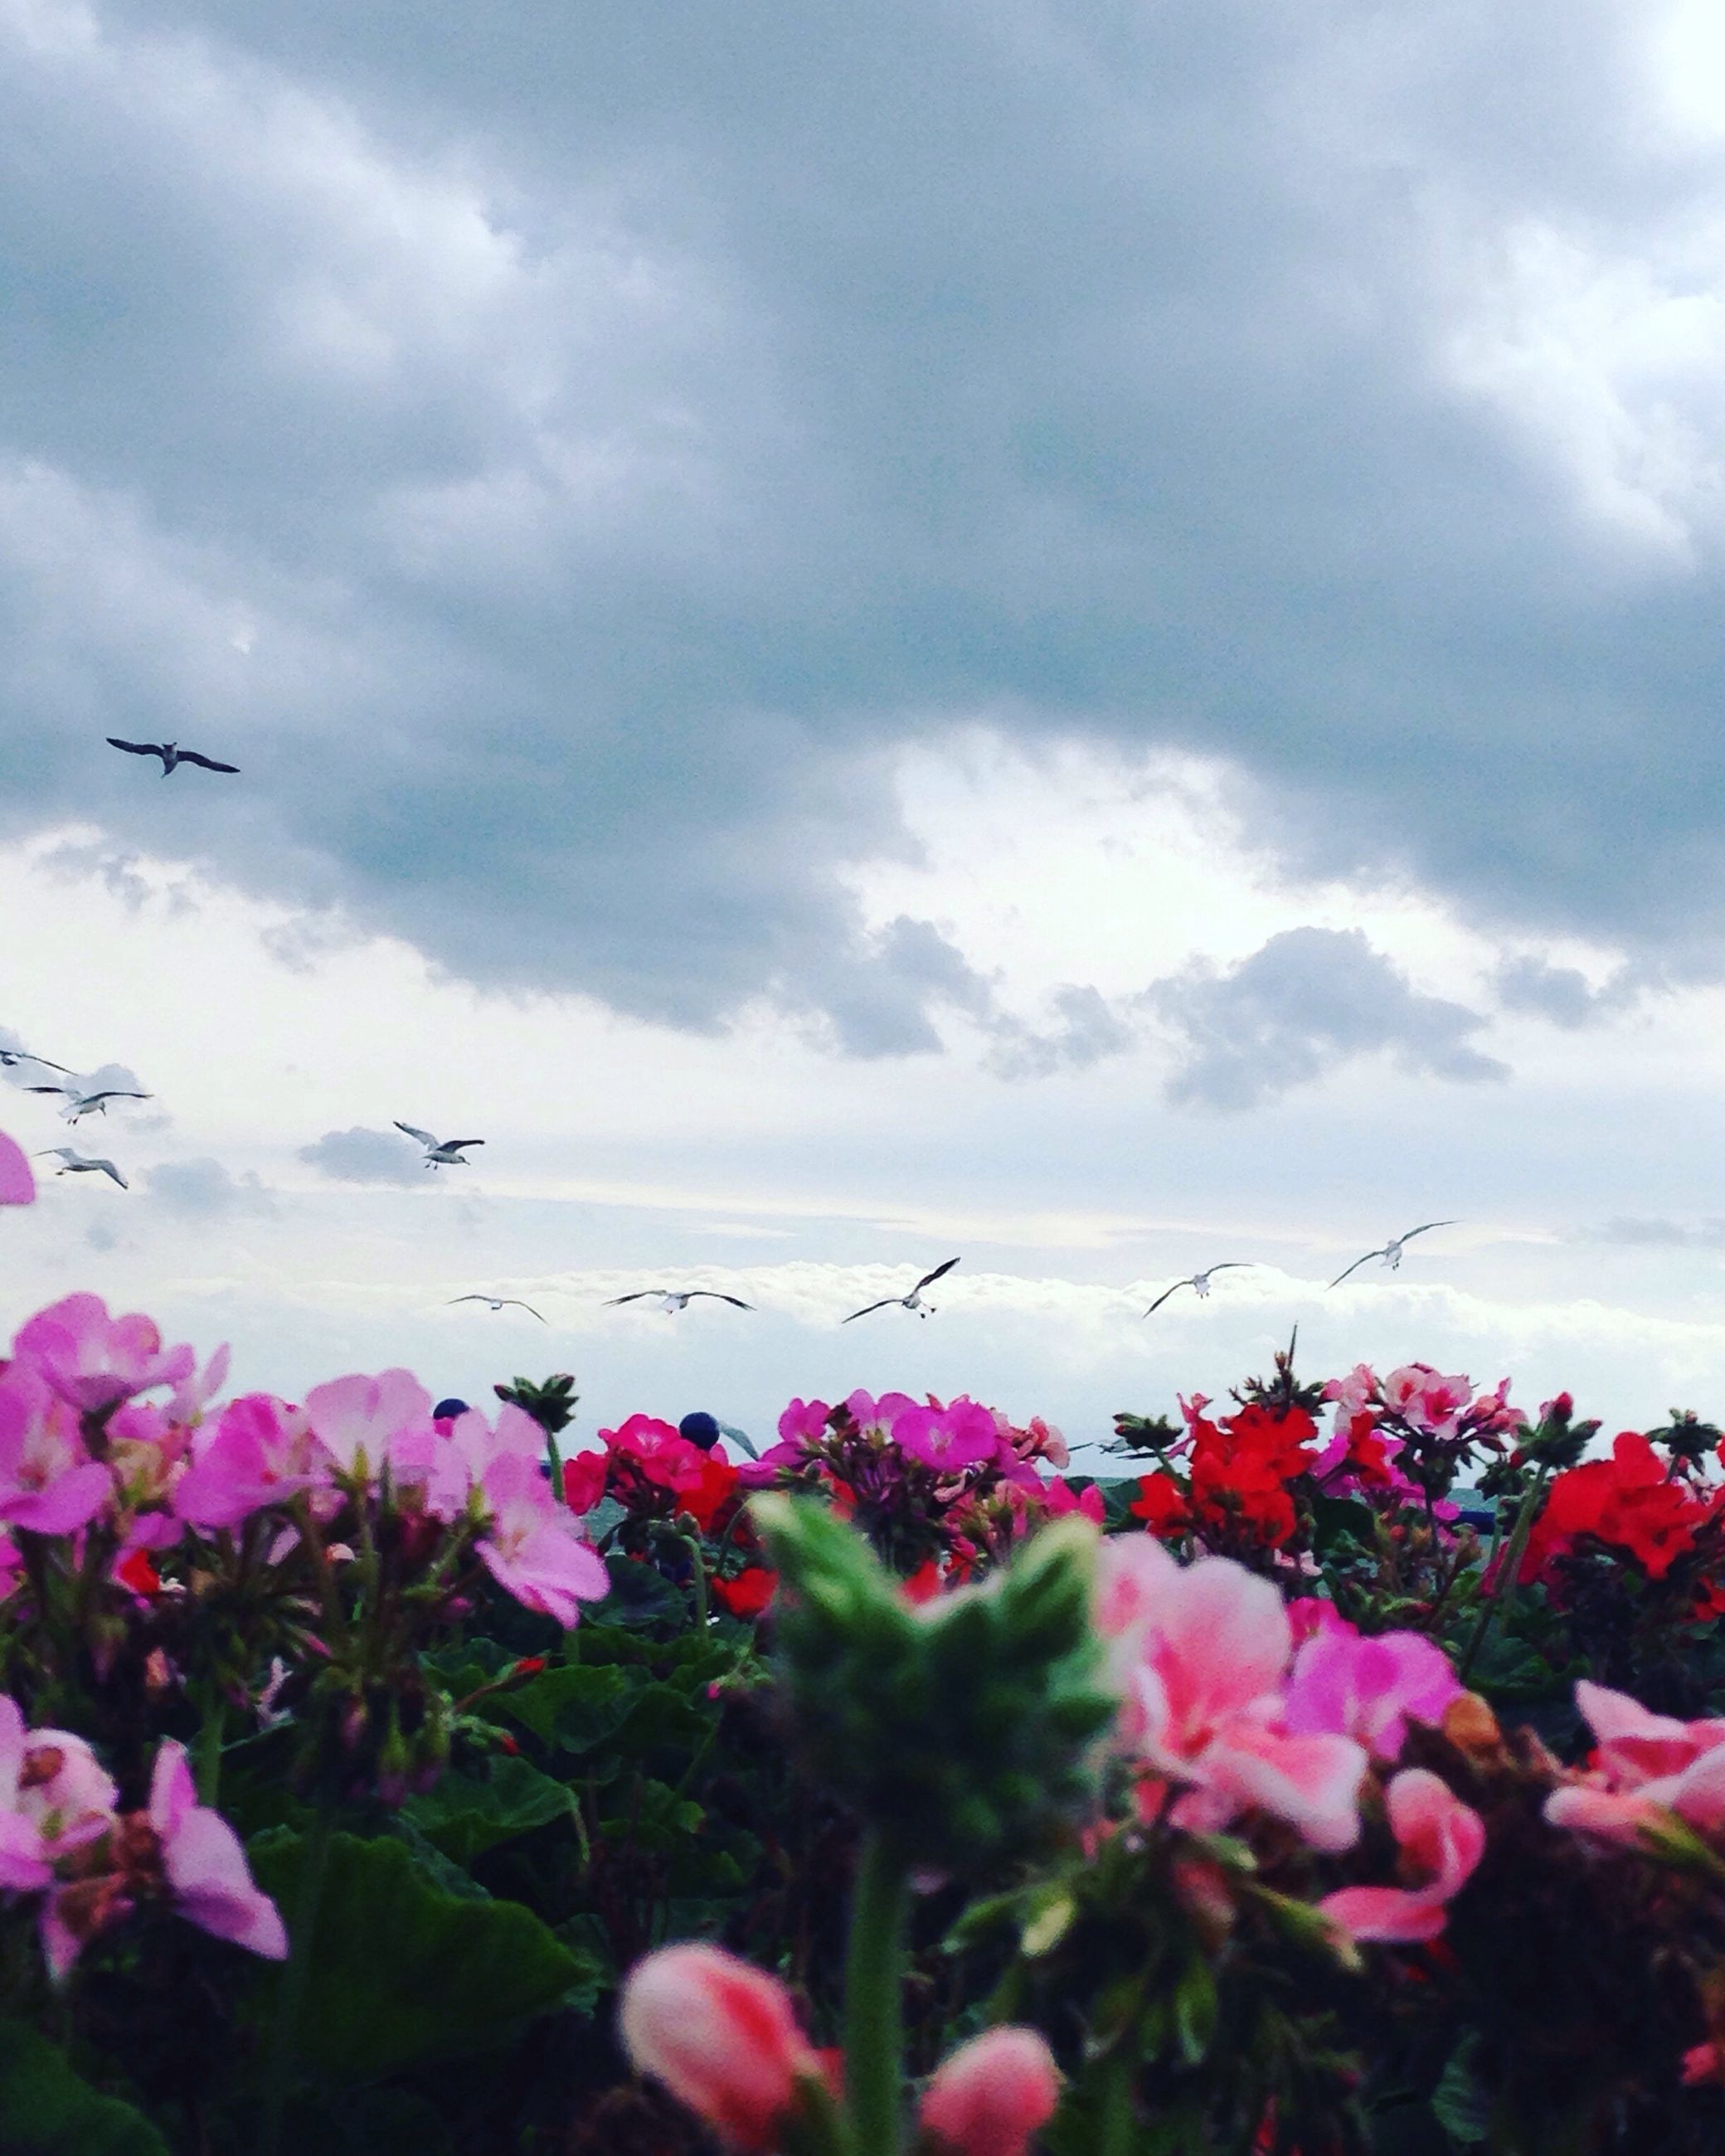 flower, freshness, fragility, beauty in nature, growth, cloud - sky, nature, pink color, sky, petal, plant, flower head, cloud, scenics, in bloom, tranquility, cloudy, tranquil scene, day, blooming, springtime, blossom, botany, cloudscape, outdoors, red, multi colored, colorful